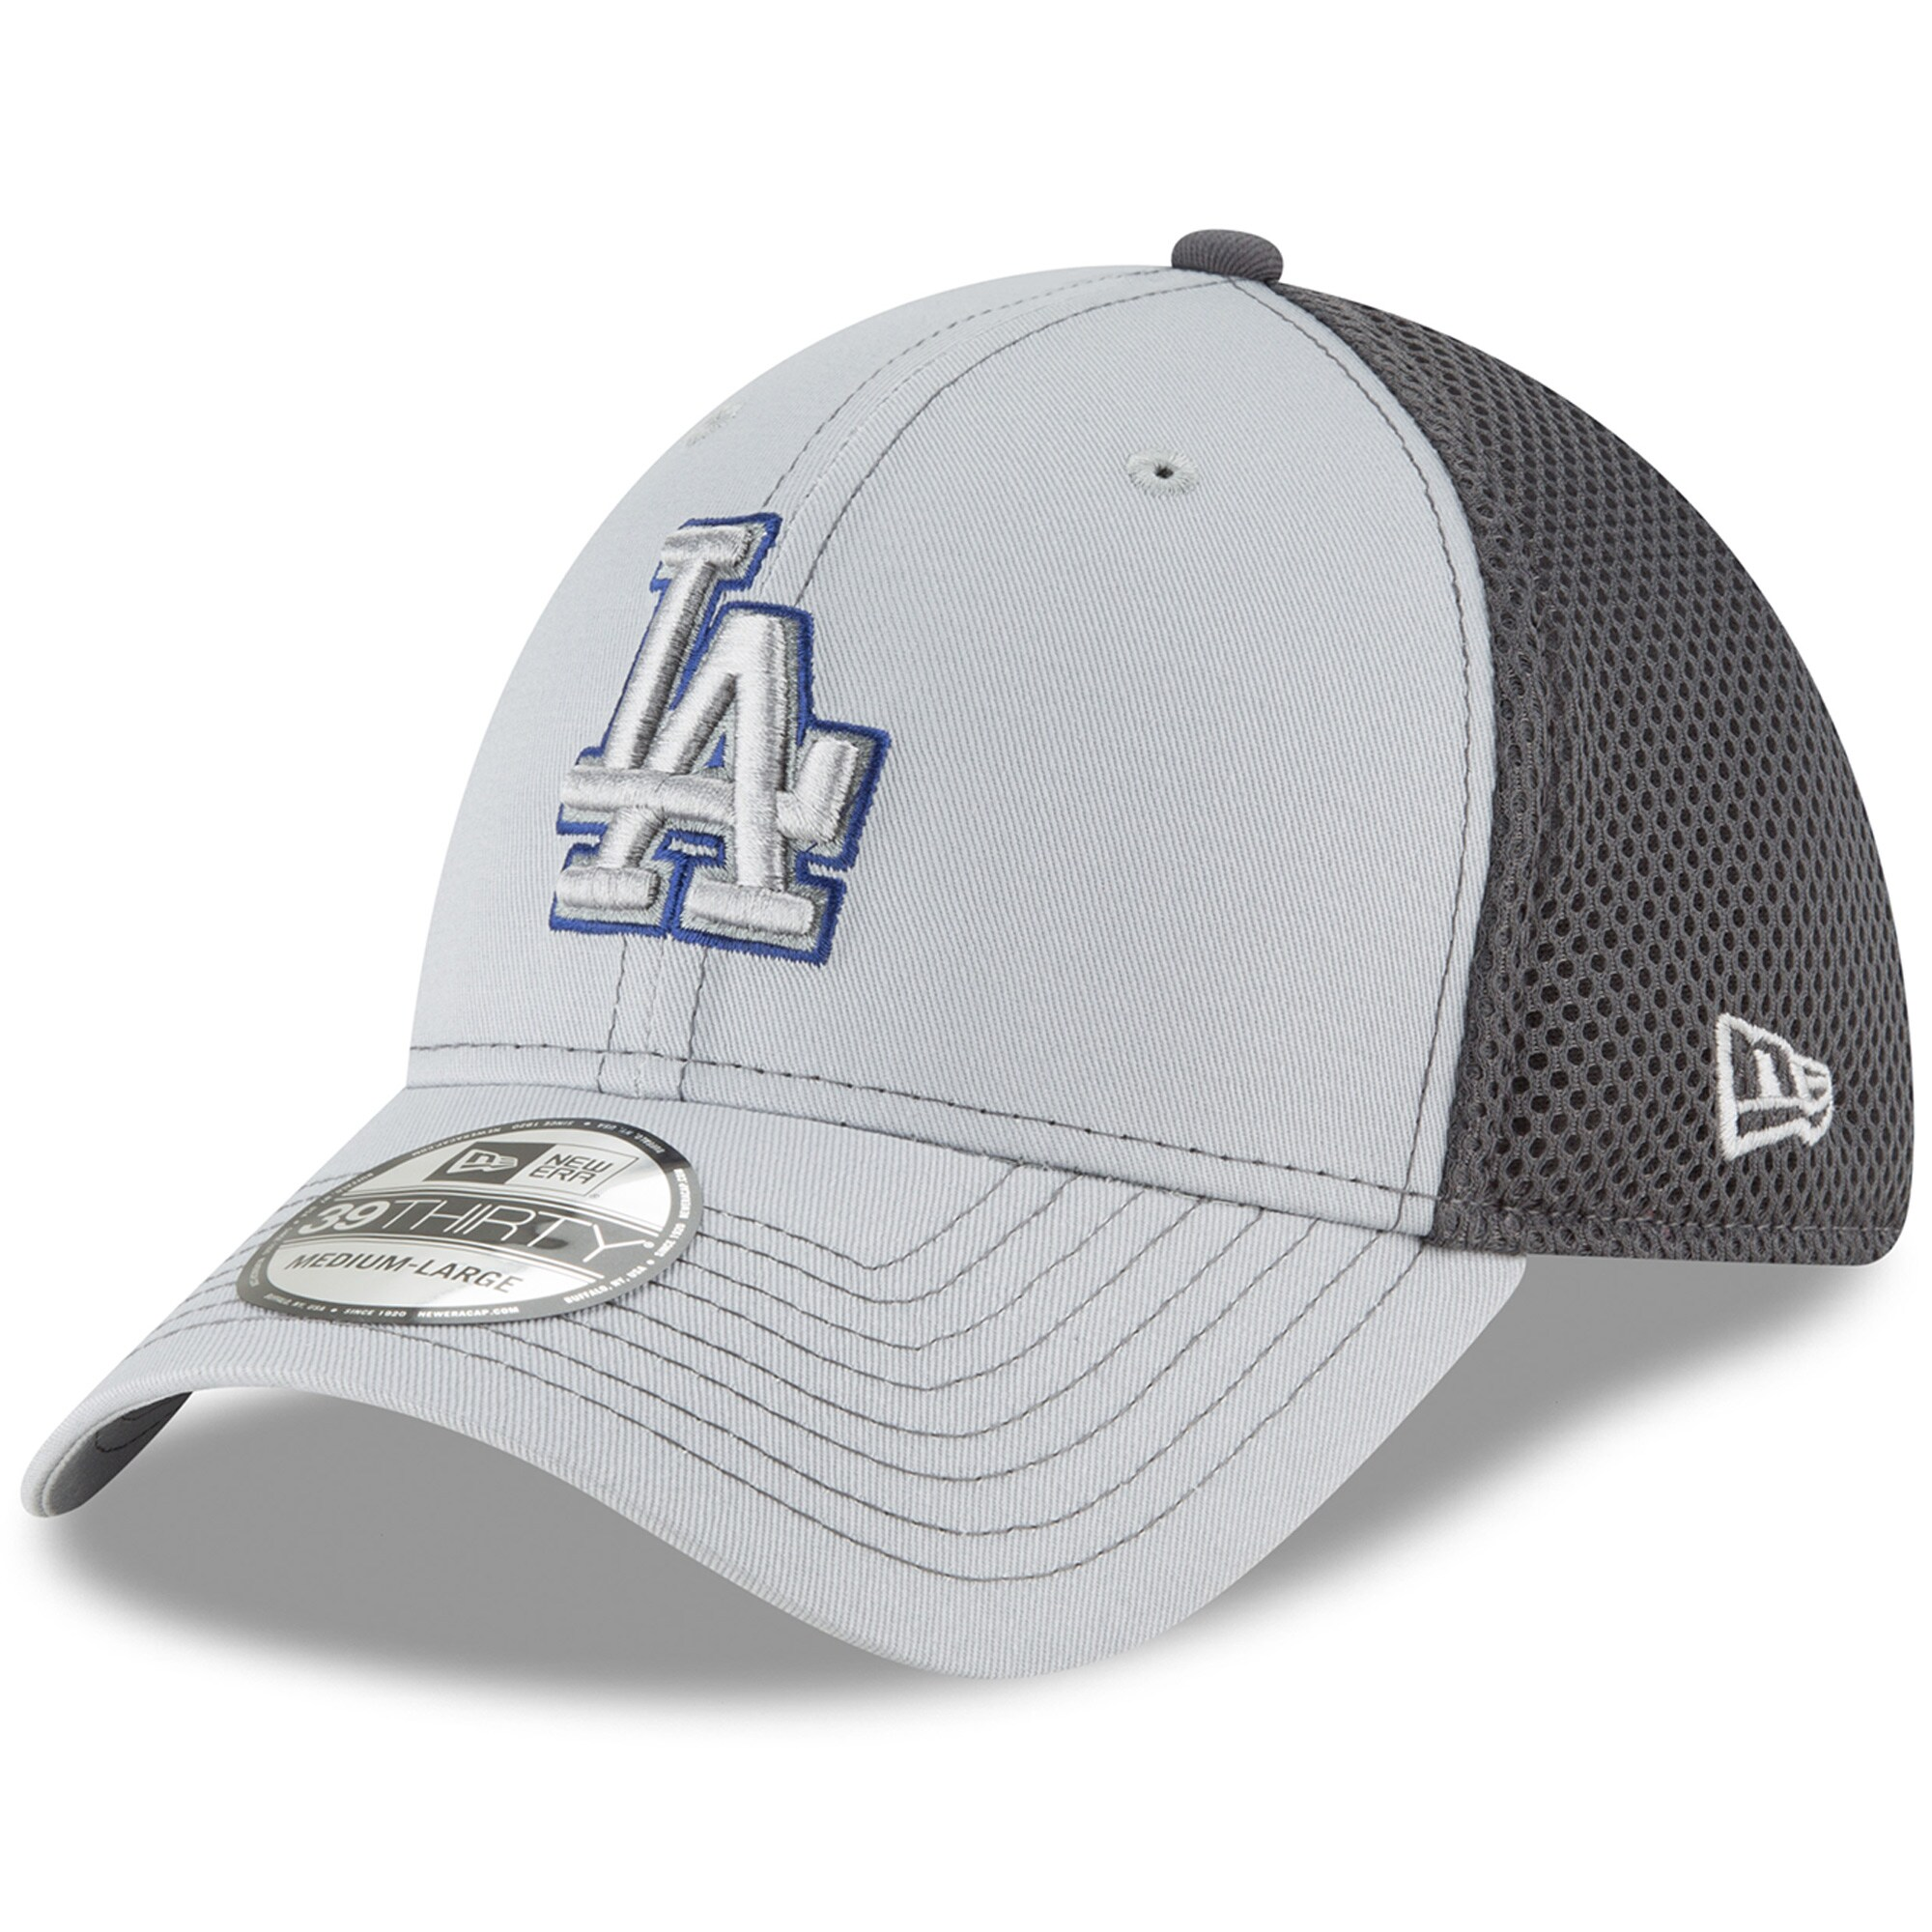 Los Angeles Dodgers New Era Grayed Out Neo 39THIRTY Flex Hat - Gray